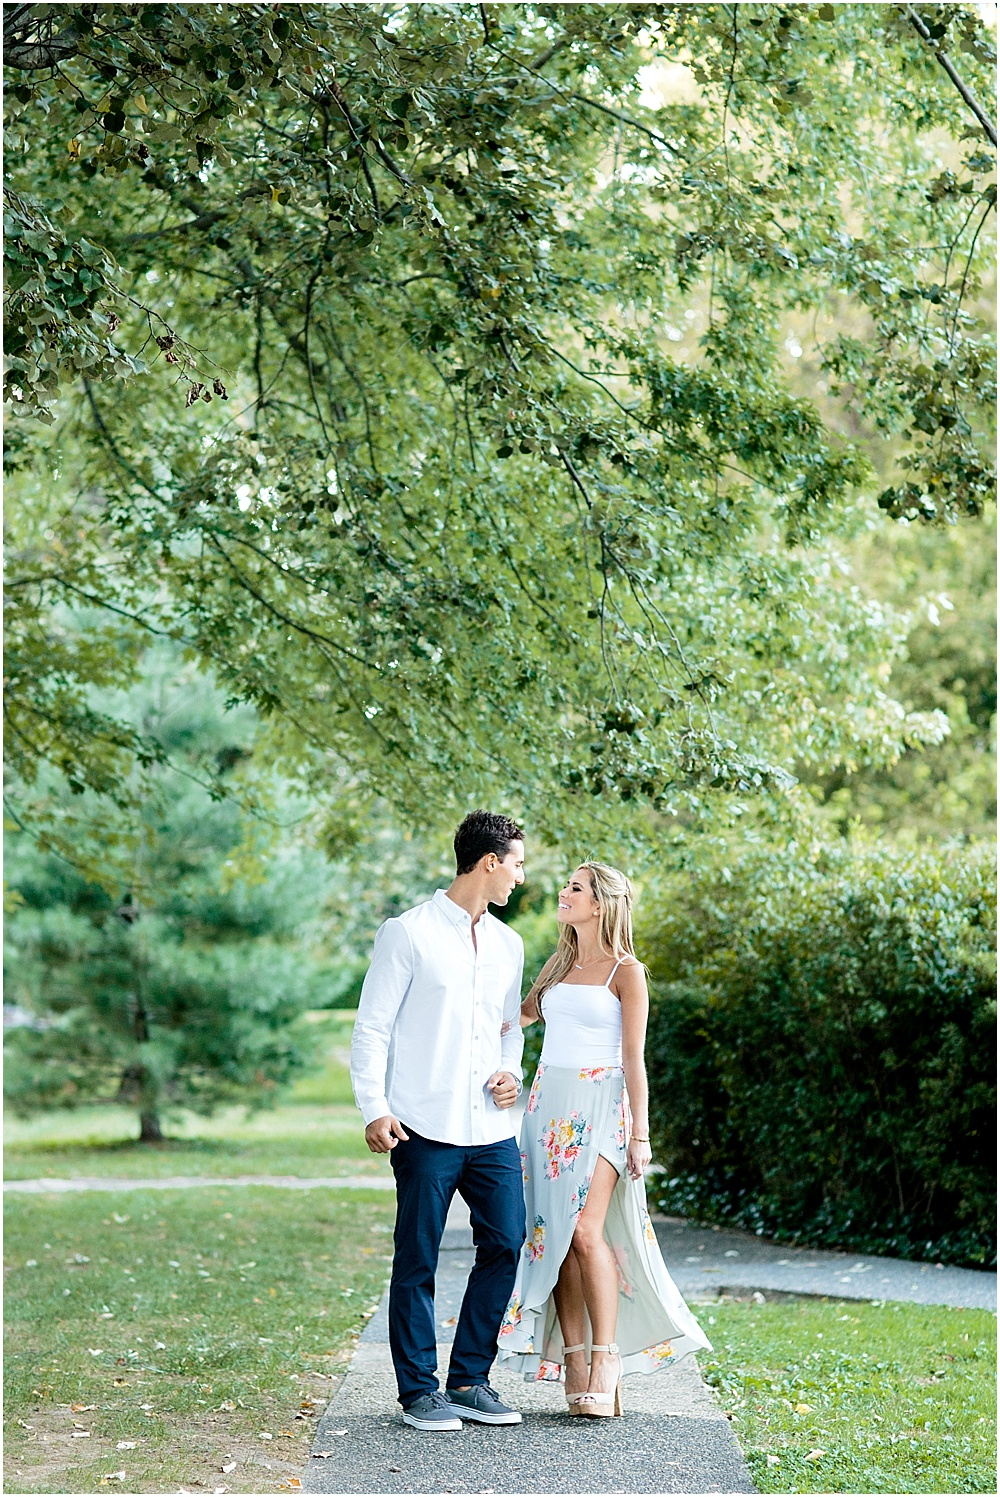 emily_steve_baltimore_maryland_wedding_photographer_0015